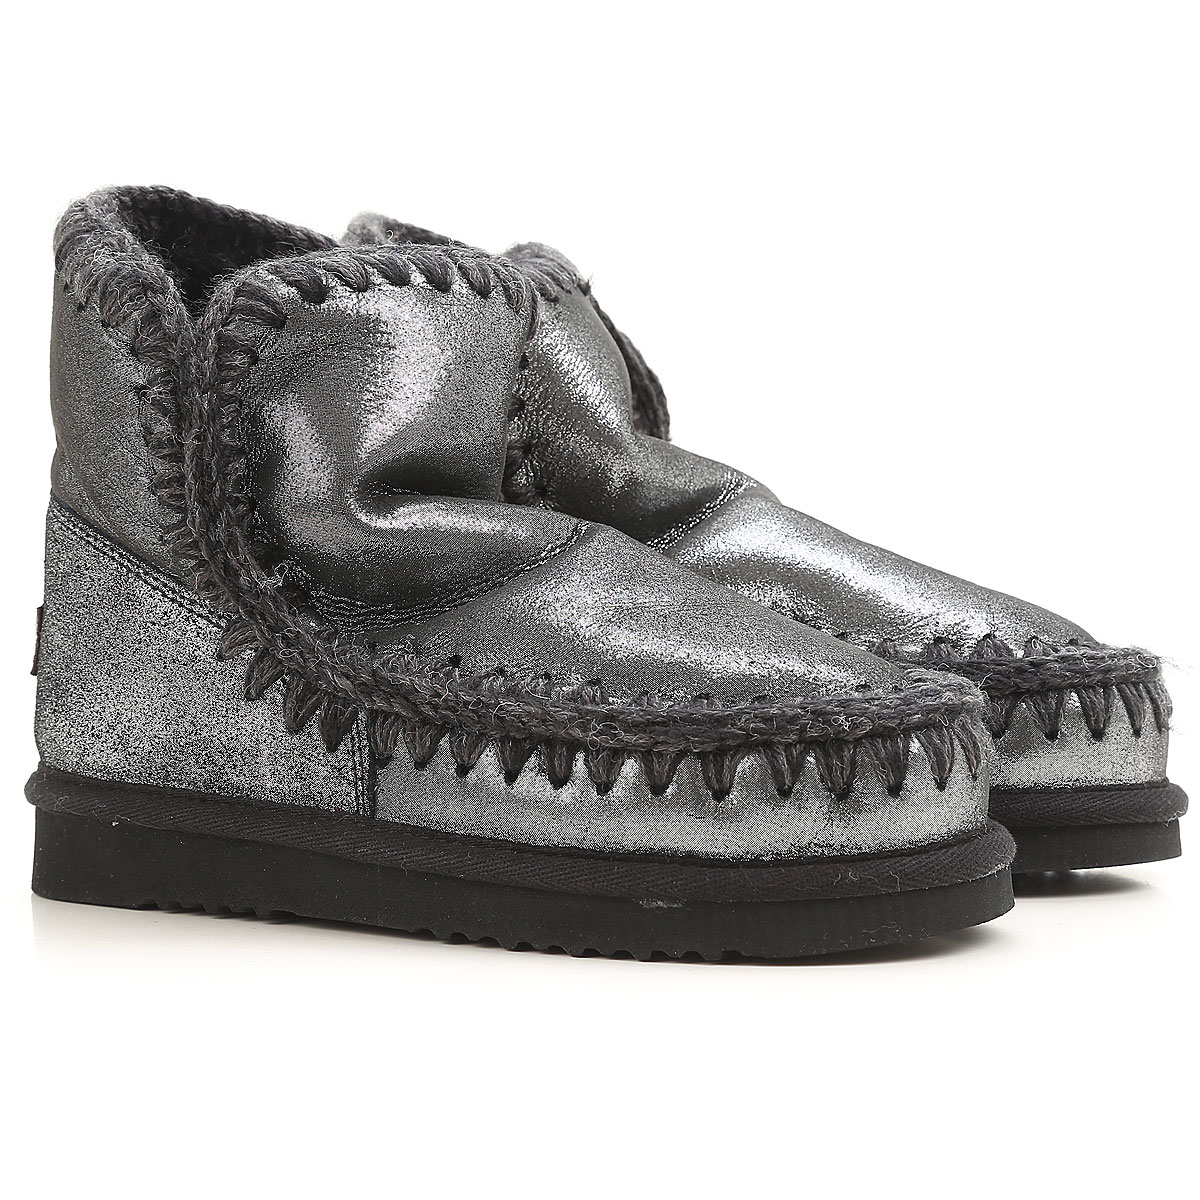 Image of Mou Boots for Women, Booties, Silver Black, Fabric, 2017, EUR 39 - UK 6 - USA 8.5 EUR 40 - UK 7 - USA 9.5 EUR 41 - UK 8 - USA 10.5